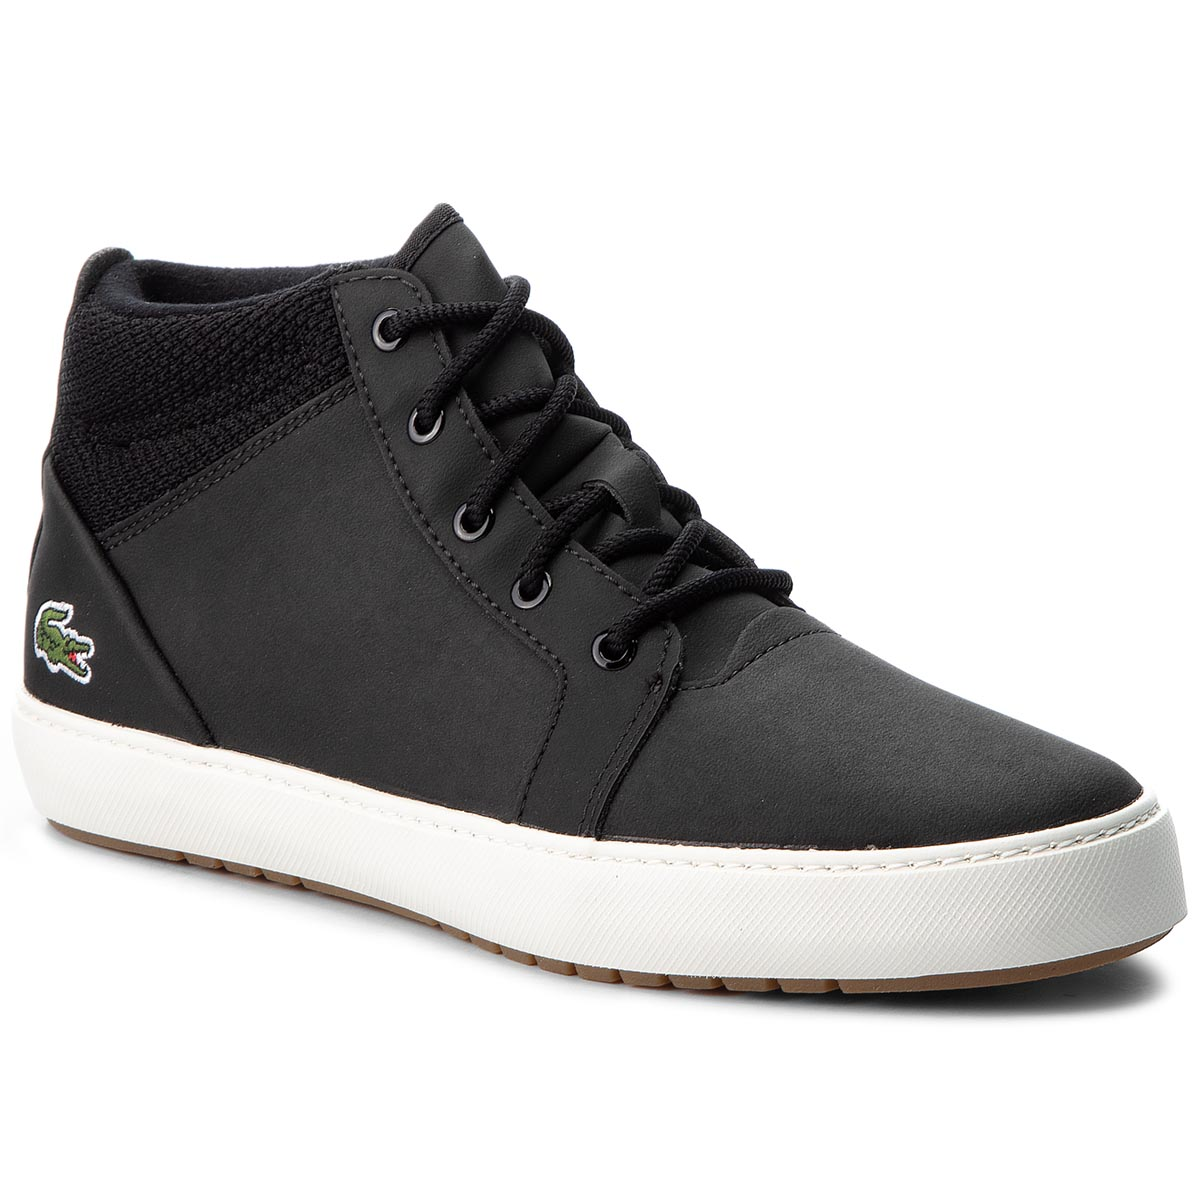 Sneakersy LACOSTE - Ampthill 318 1 Caw 7-36CAW0003454 Blk/Off Wht